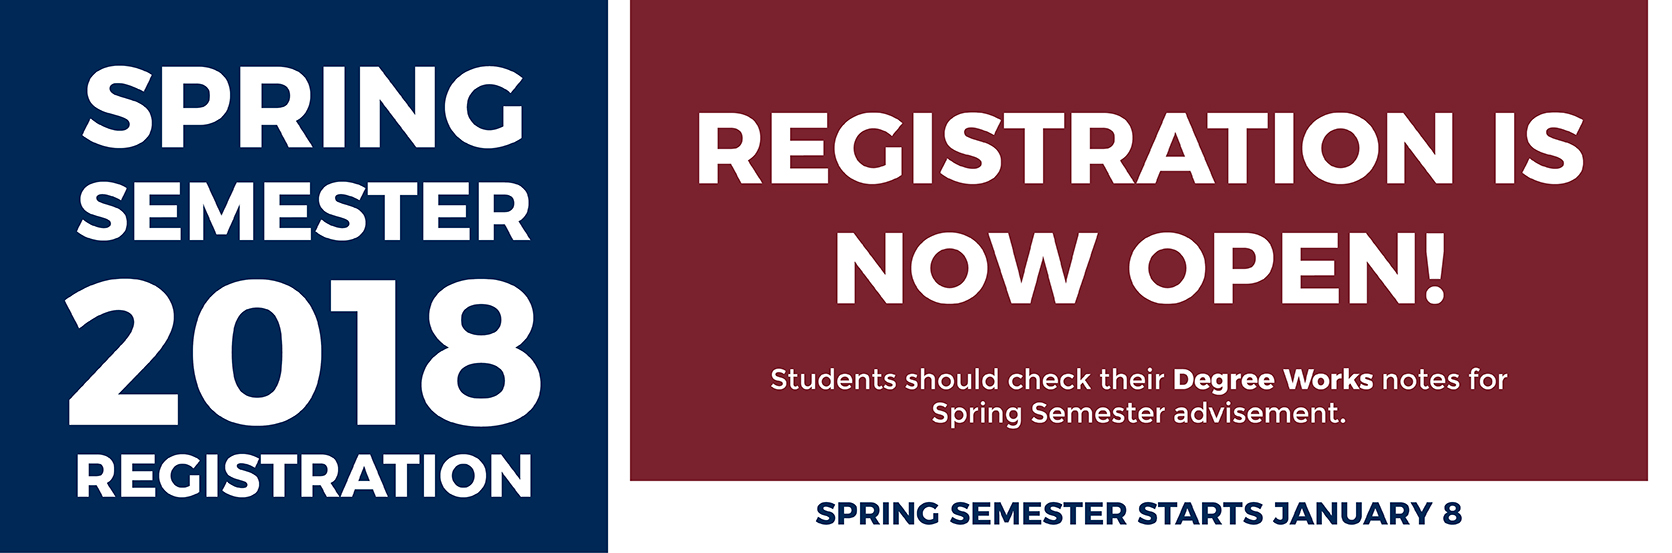 Spring semester registration now open.